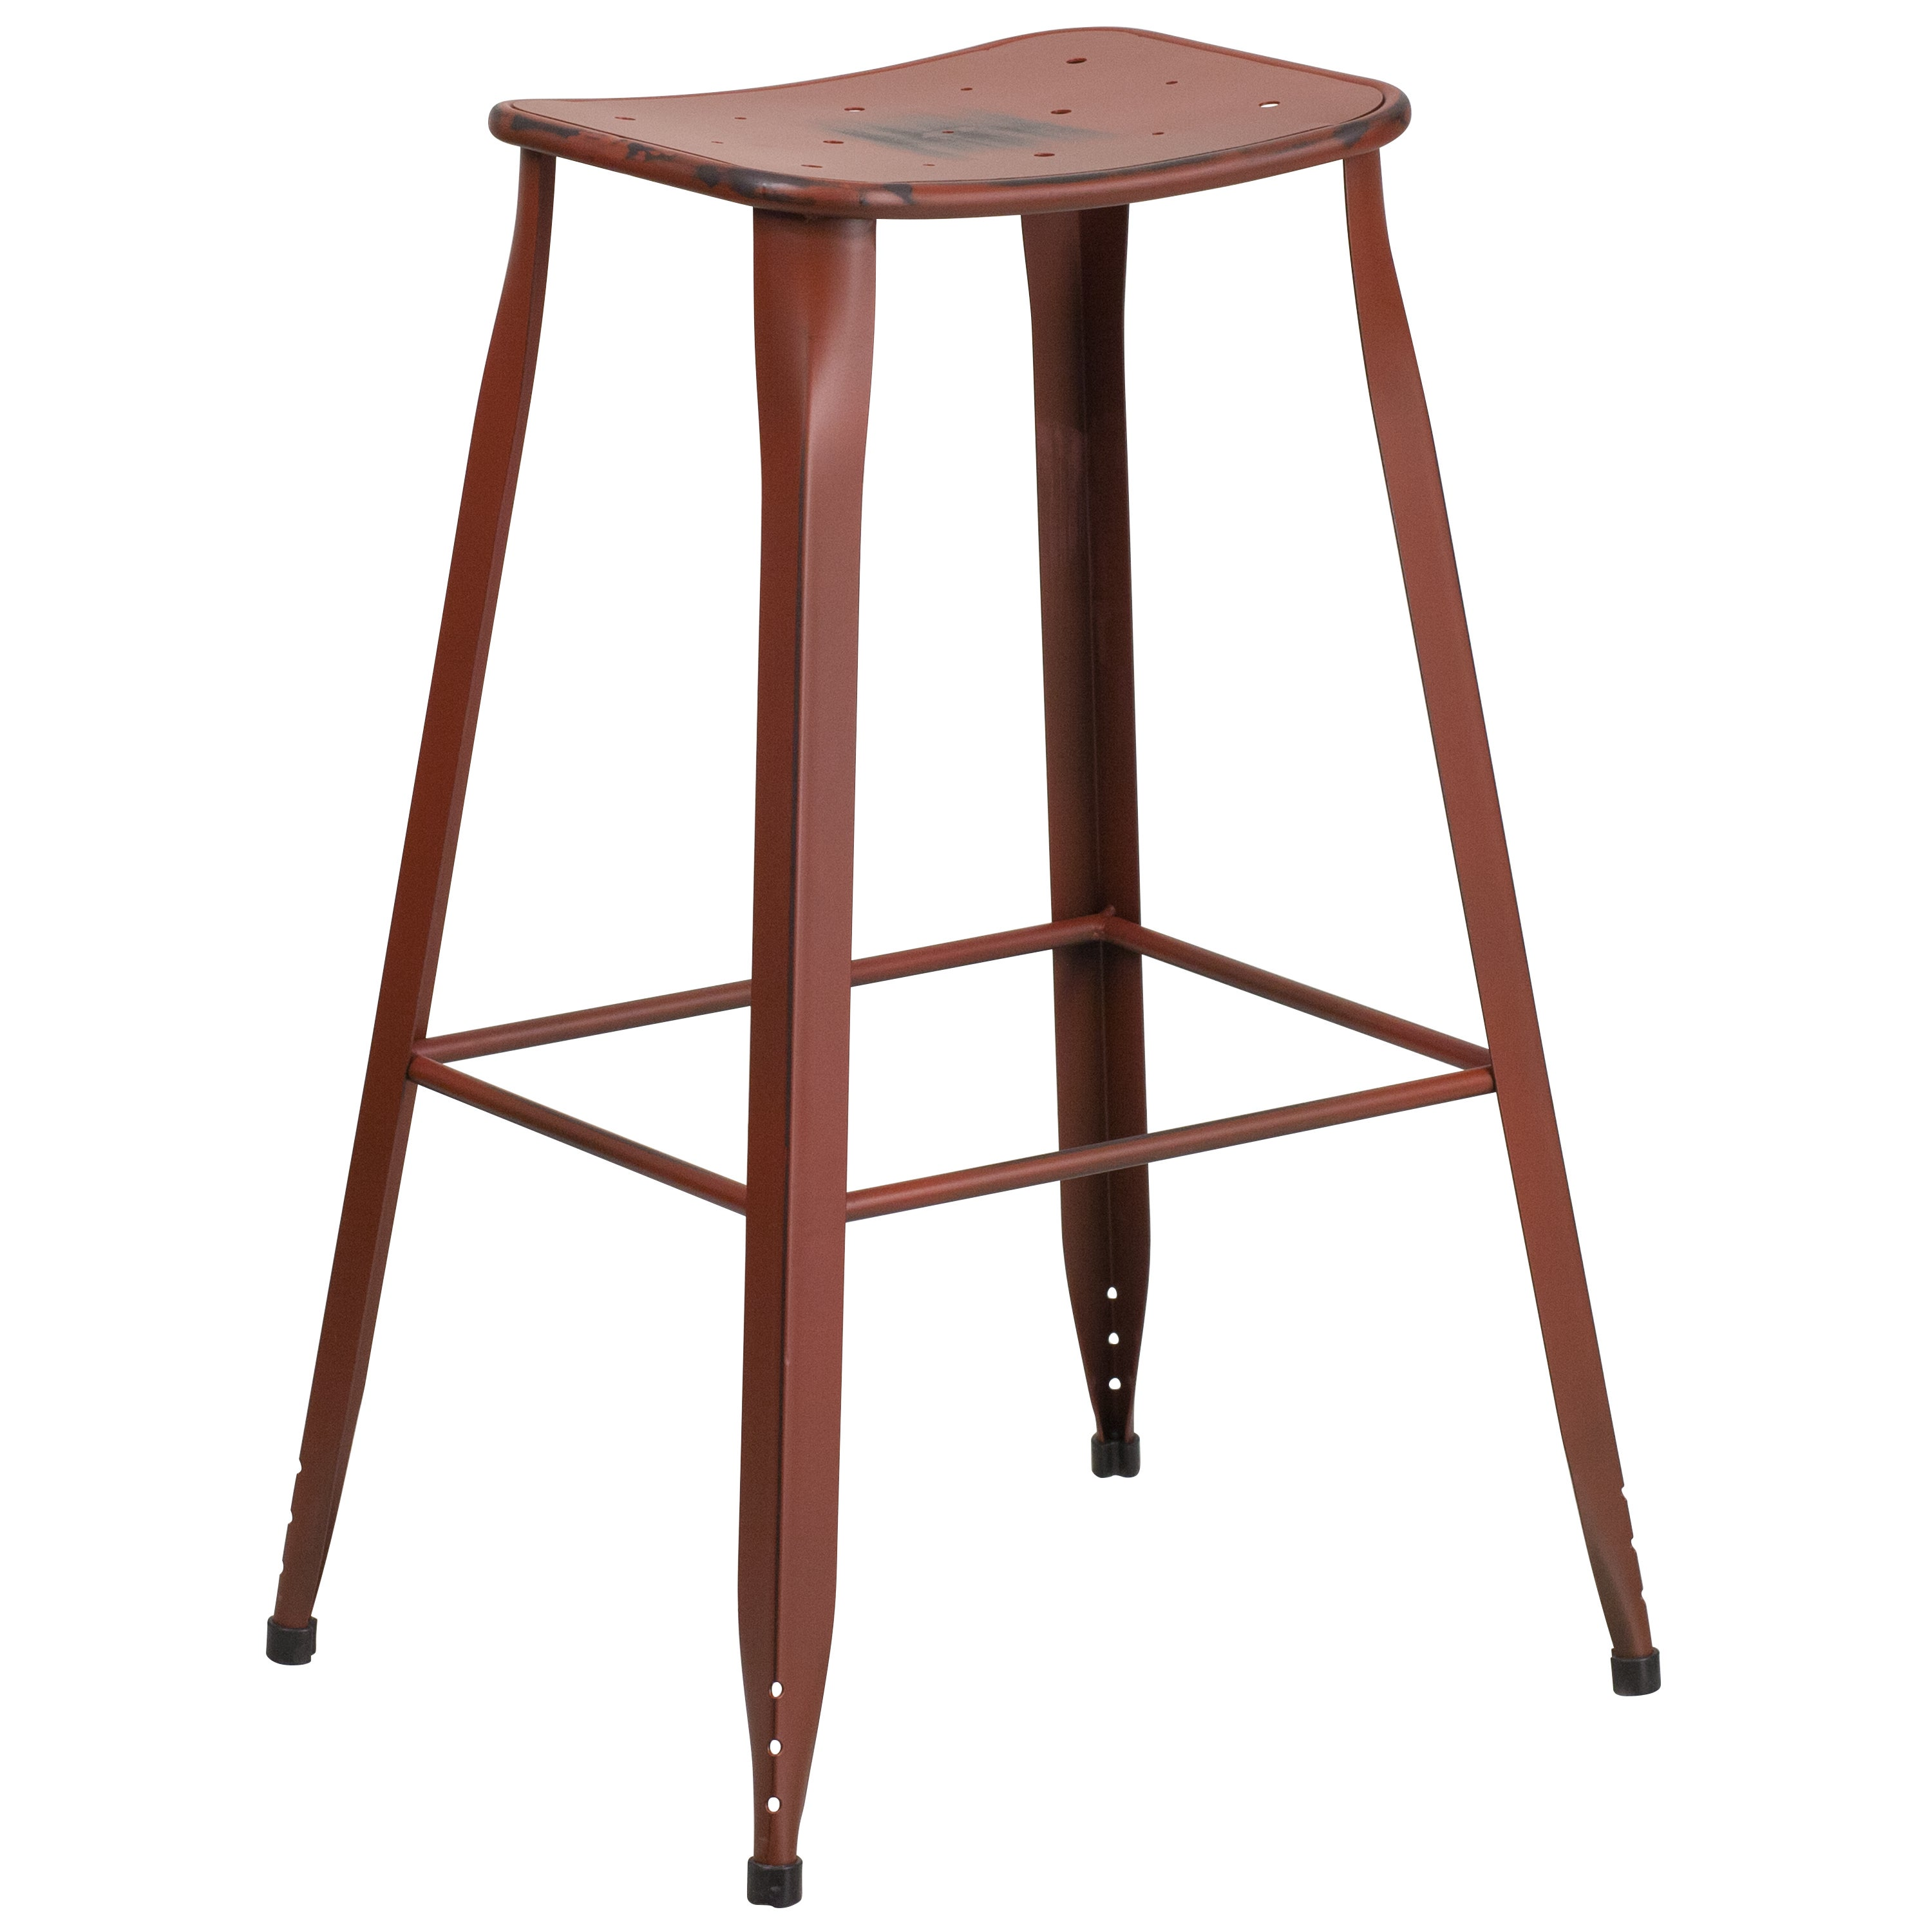 Distressed Red Galvanized Metal 30 Inch Bar Stool Free Shipping Today 14076324